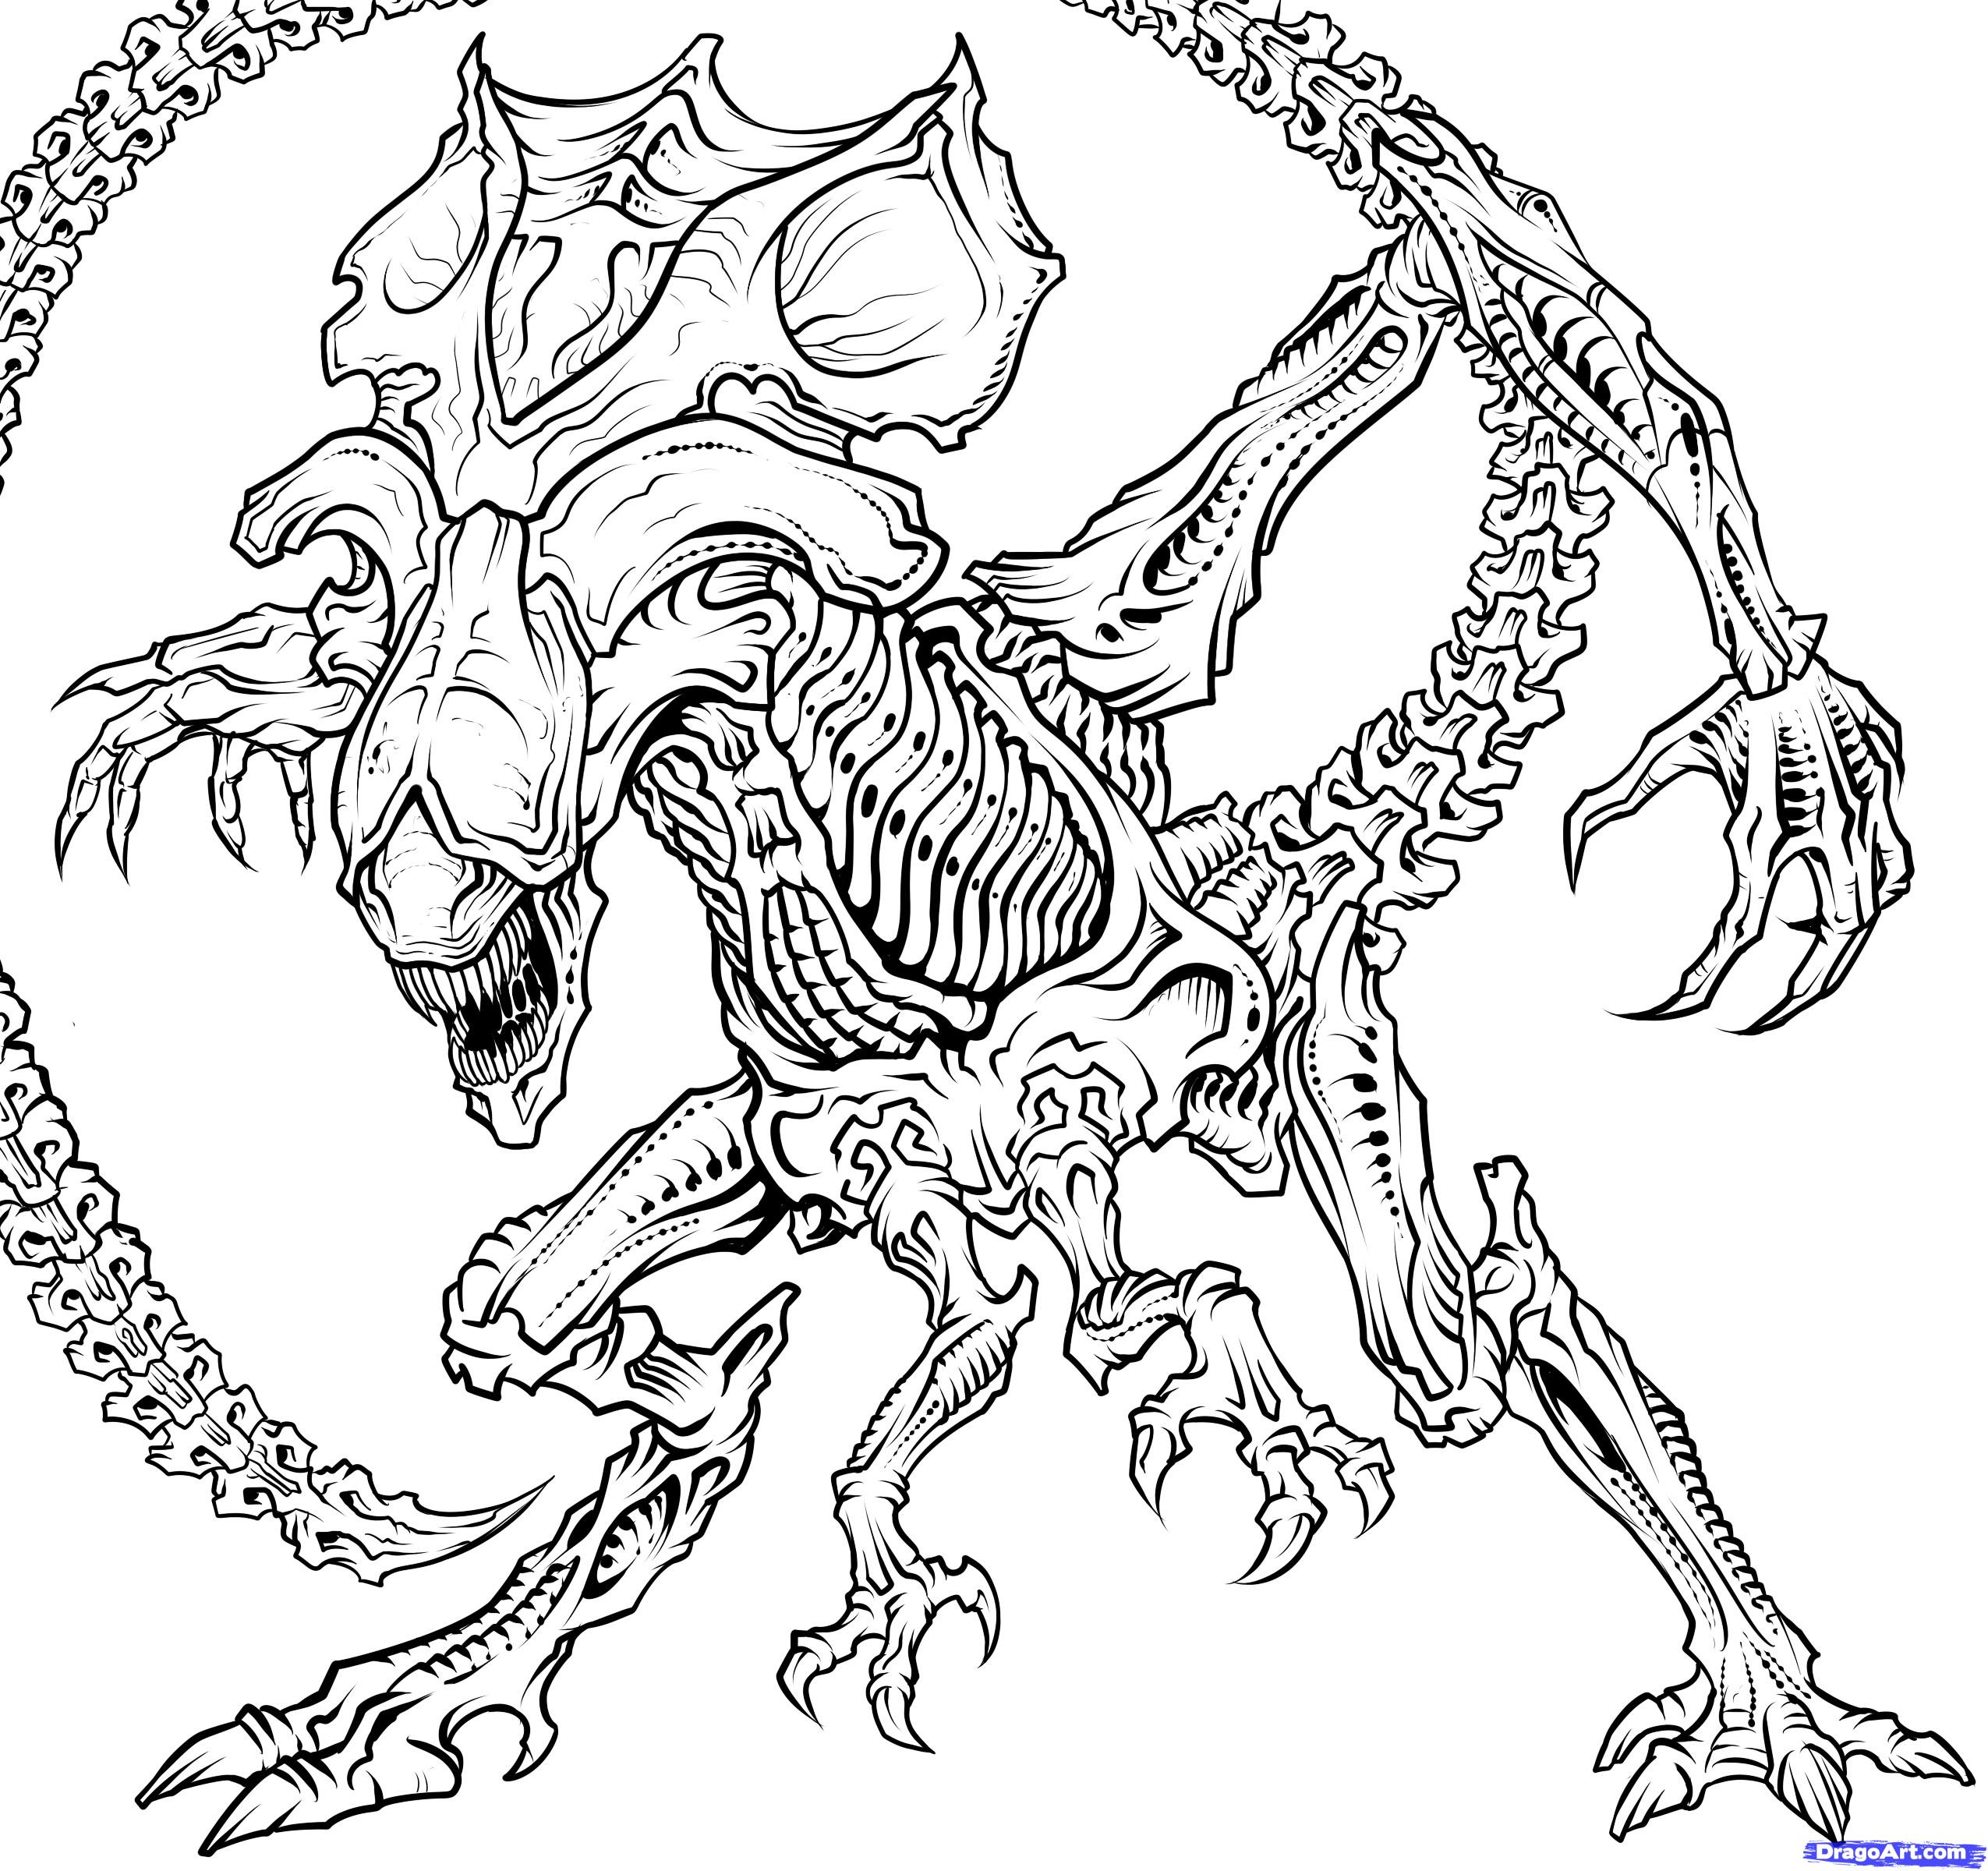 Aliens Drawing at GetDrawings.com | Free for personal use Aliens ...